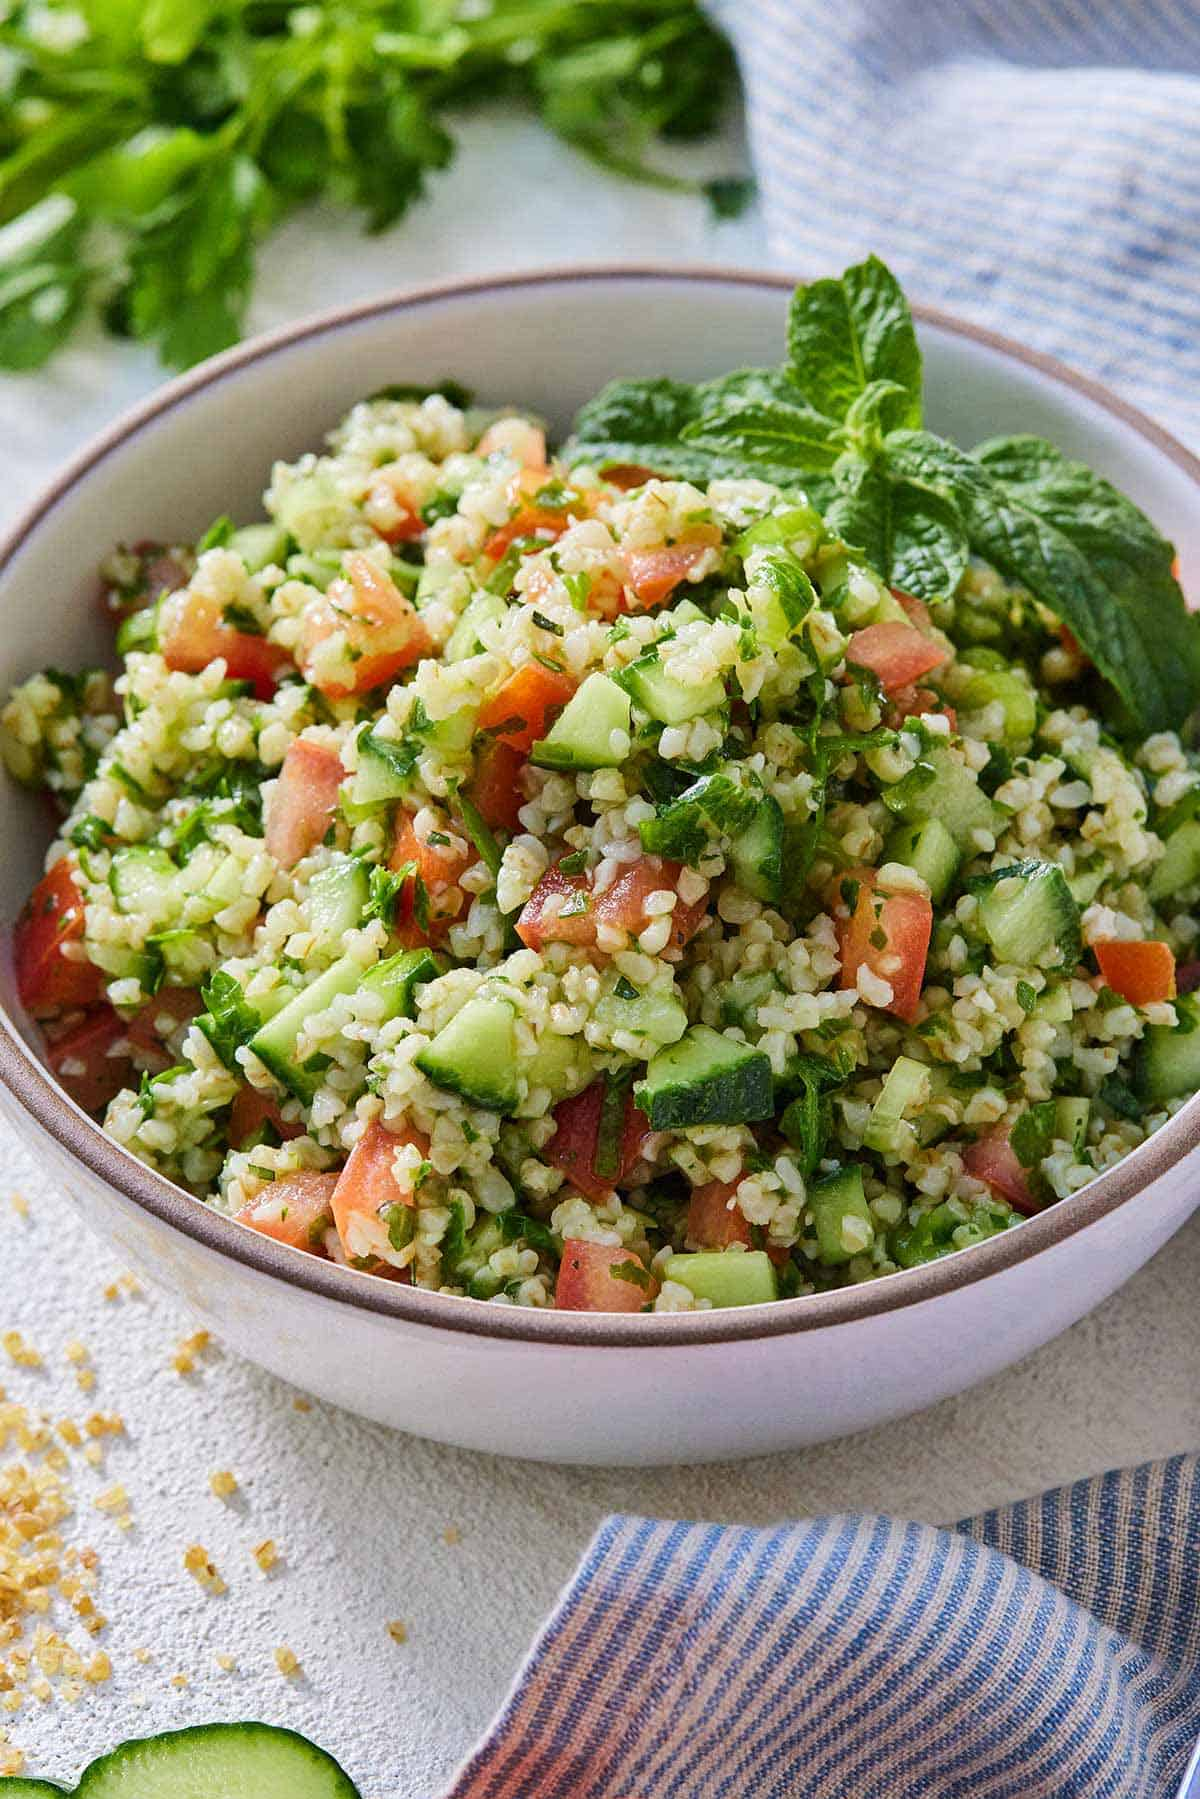 A bowl of tabbouleh topped with fresh mint as a garnish and beside a blue and white striped linen.